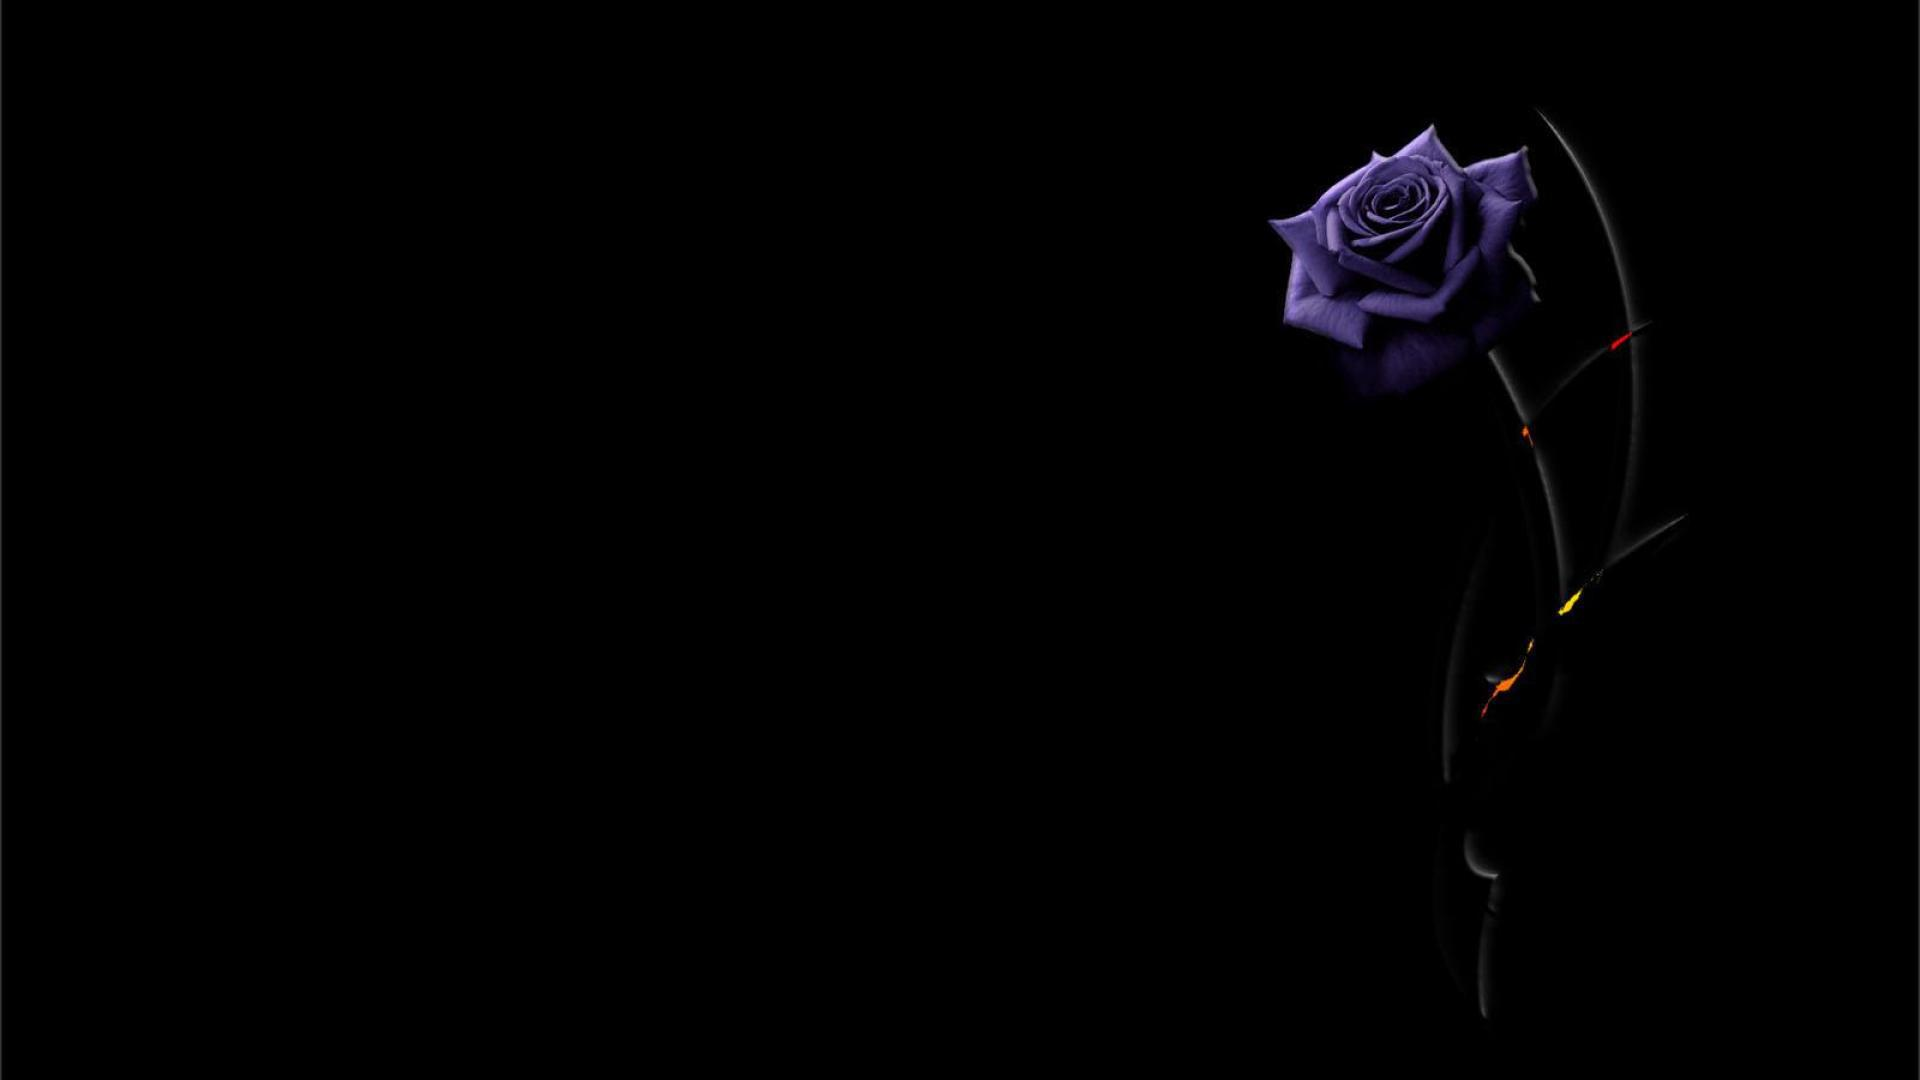 50] Dark Beautiful Wallpaper on WallpaperSafari 1920x1080